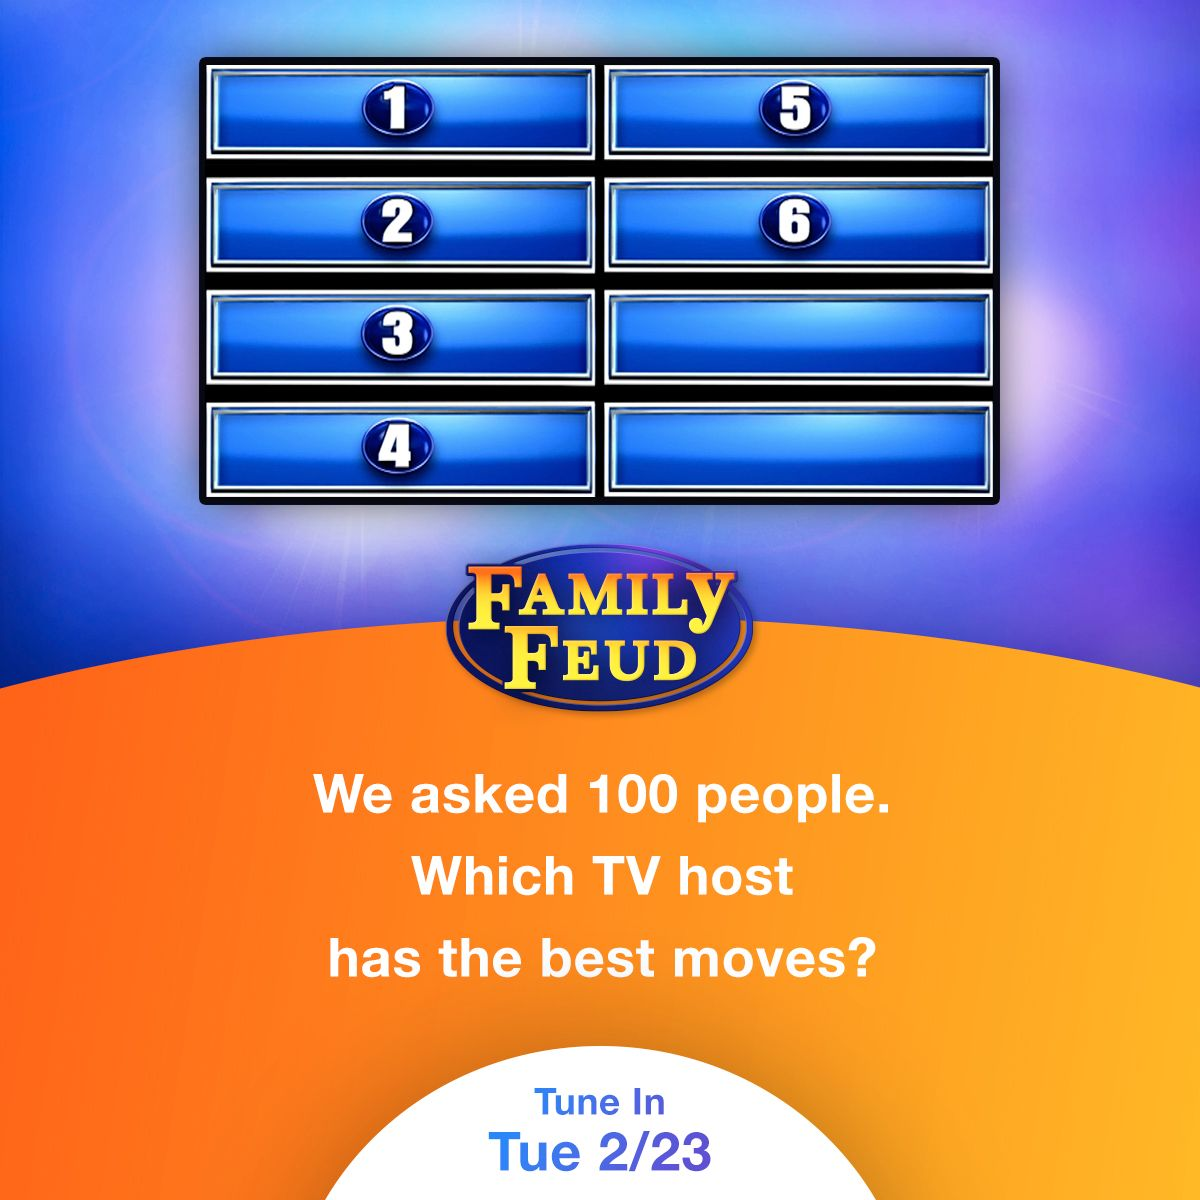 Can YOU guess the #1 answer? Watch Family Feud TONIGHT at 7:00pm and 7:30pm on MyTVZ to find out if you're right! . . #familyfeud #onmytvz #weeknights #backtoback #startingat7 #yourentertainmentstation #mytvz #wtvz #steveharvey #lol #hamptonroads #norfolk #virginiabeach